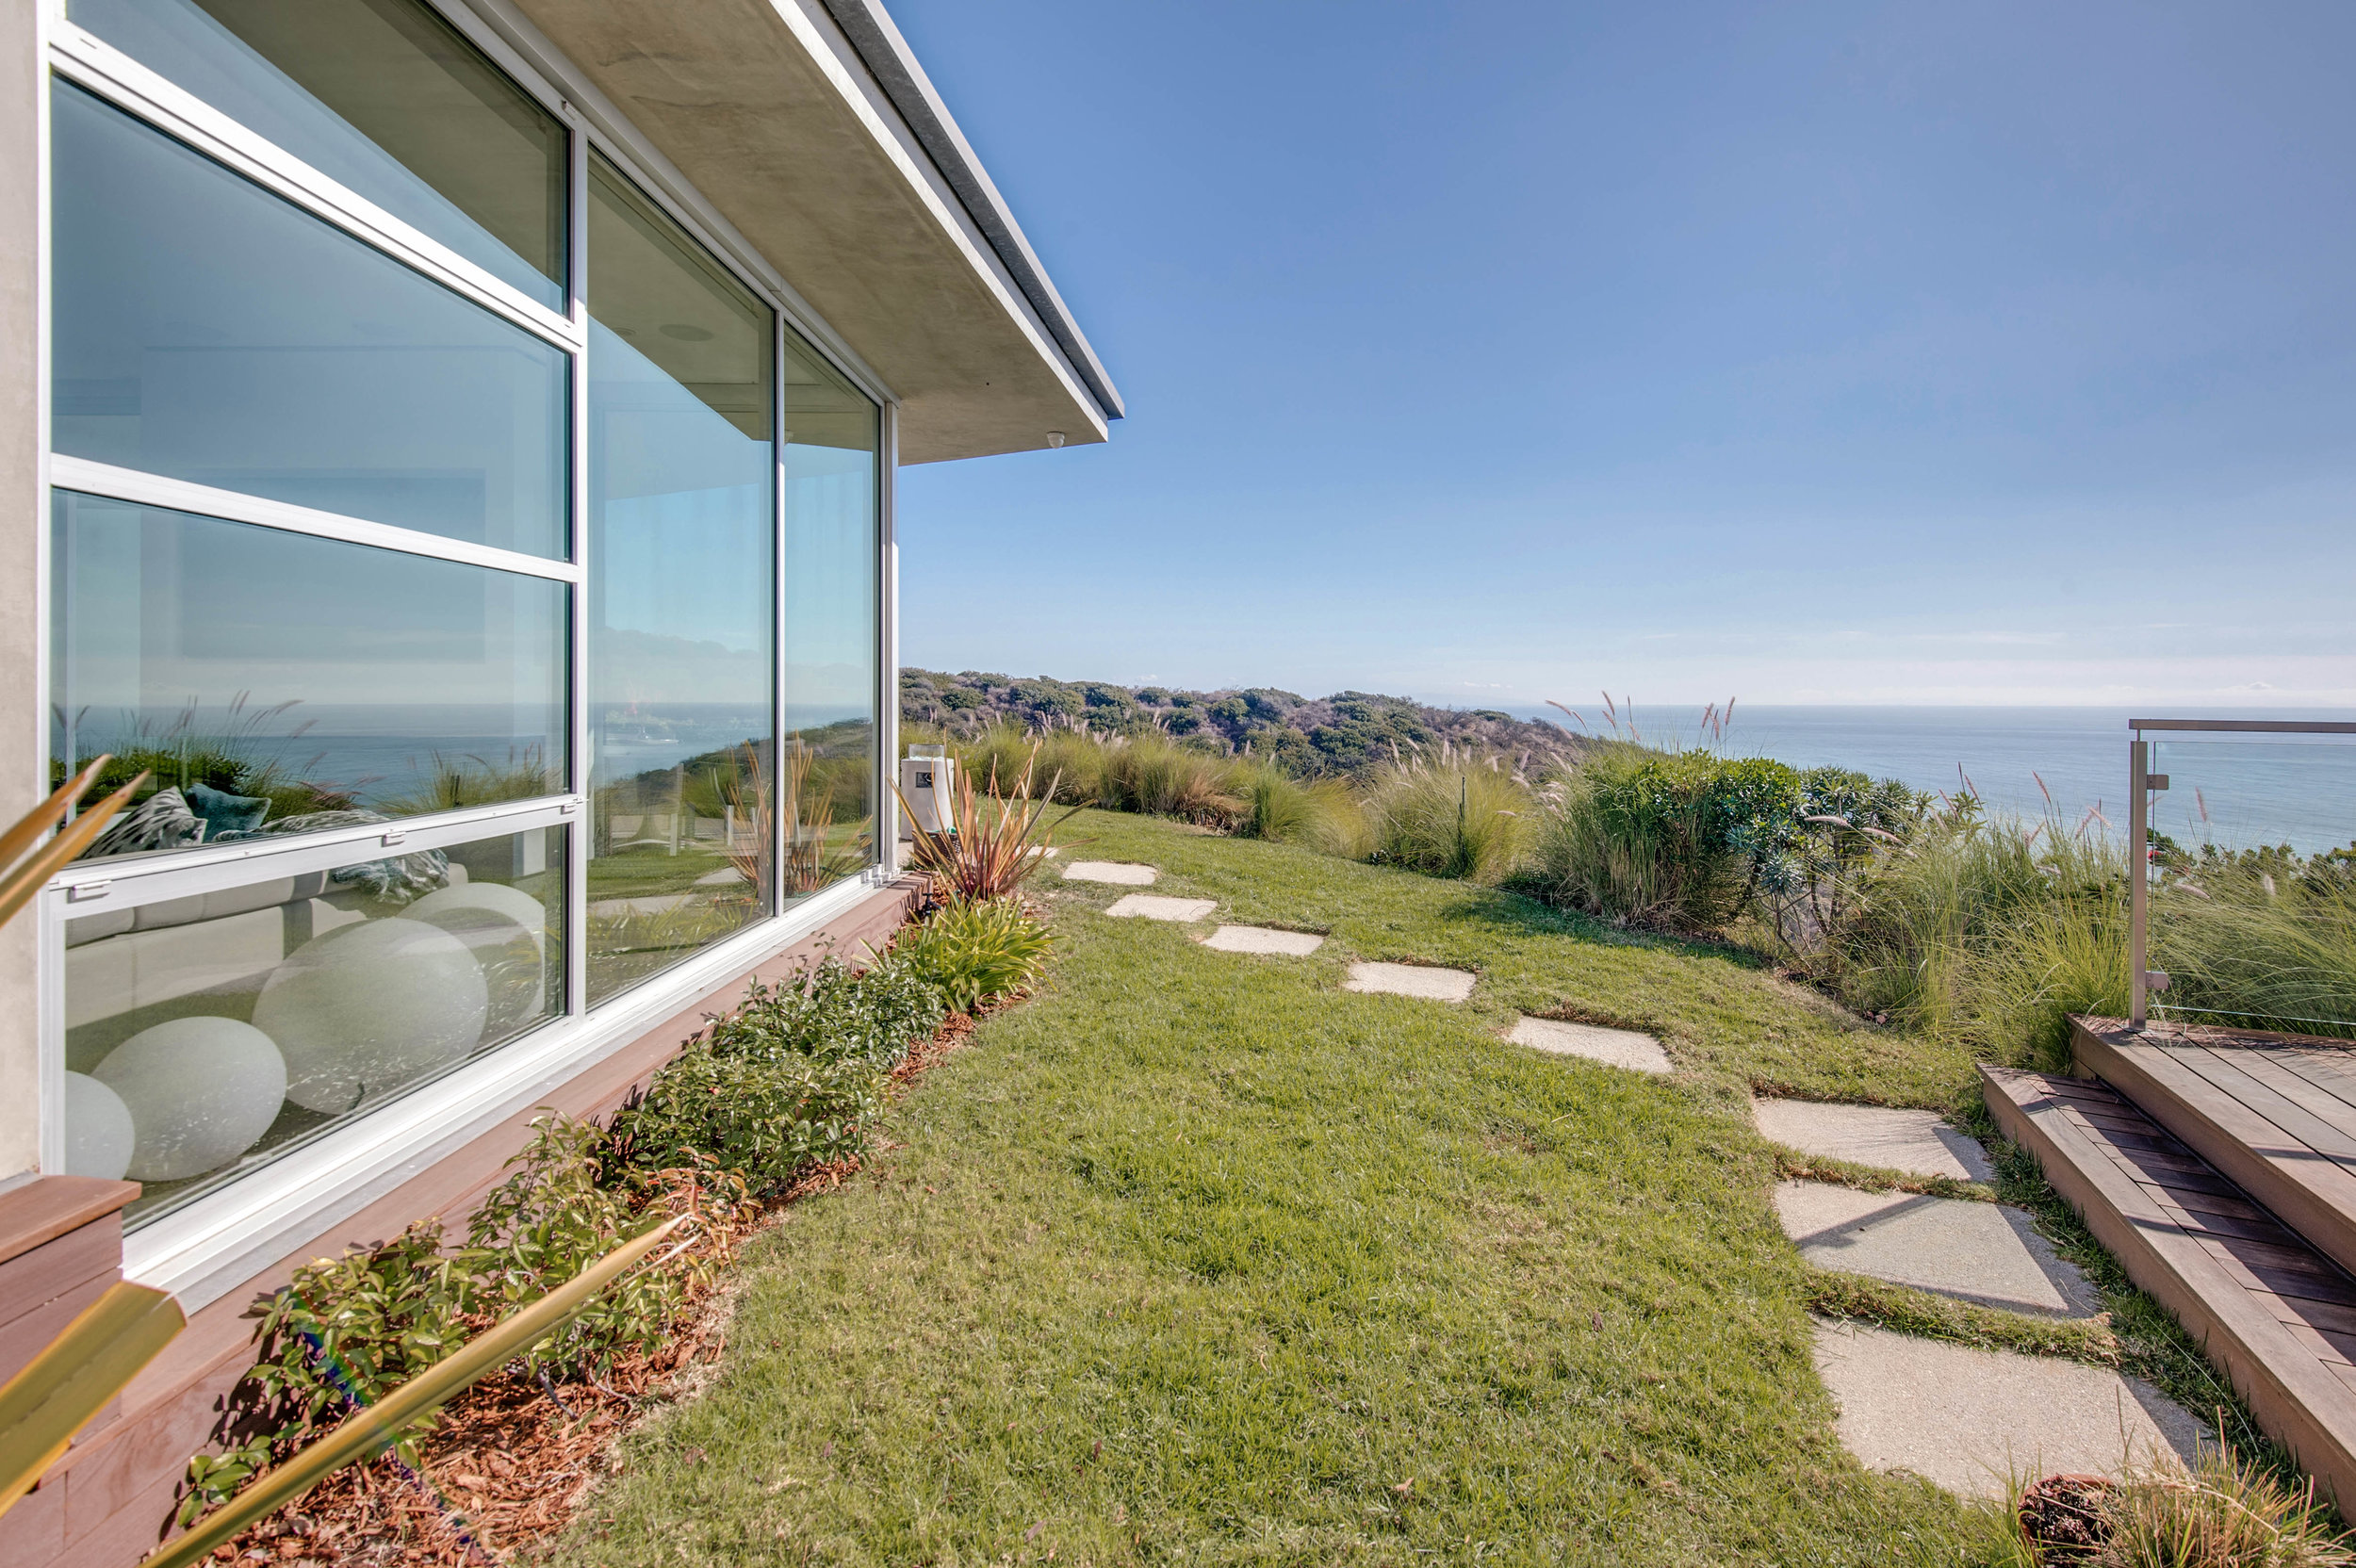 Copy of 014 Lawn 20729 Eaglepass For Sale Lease The Malibu Life Team Luxury Real Estate.jpg